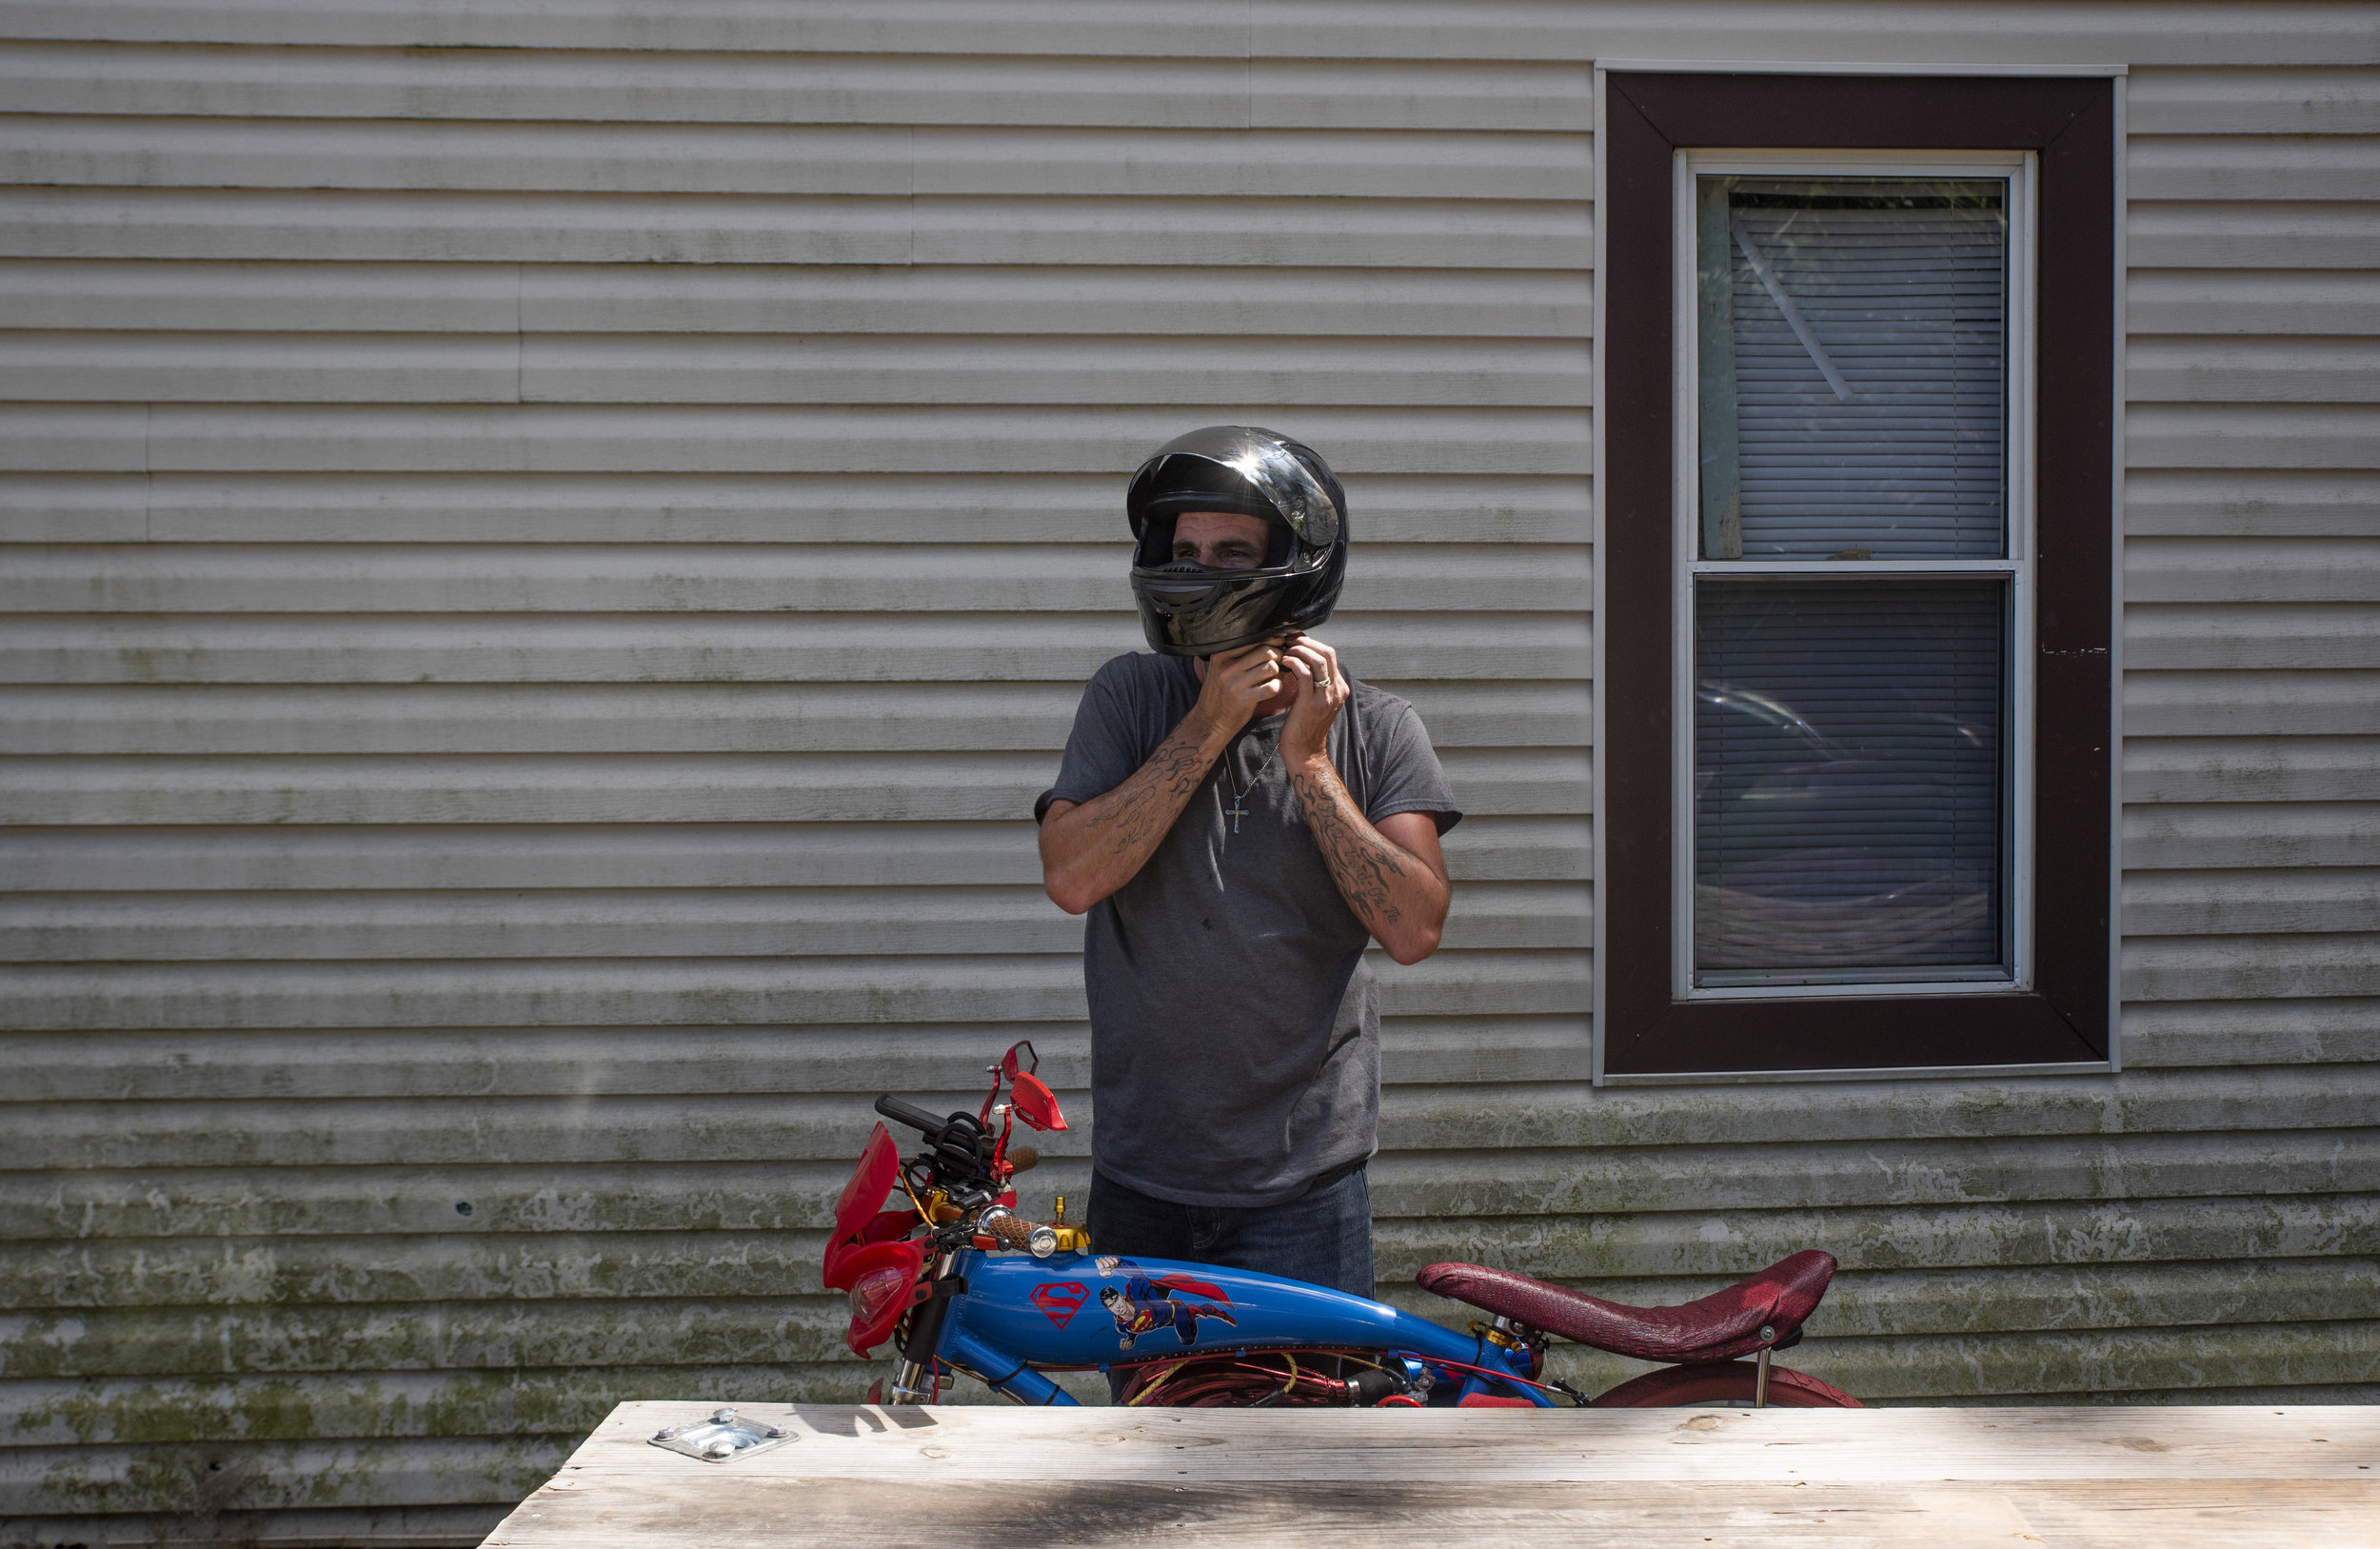 """Calvin prepares to ride his motorized bicycle, """"Superman"""", as he tightens the straps on his helmet."""